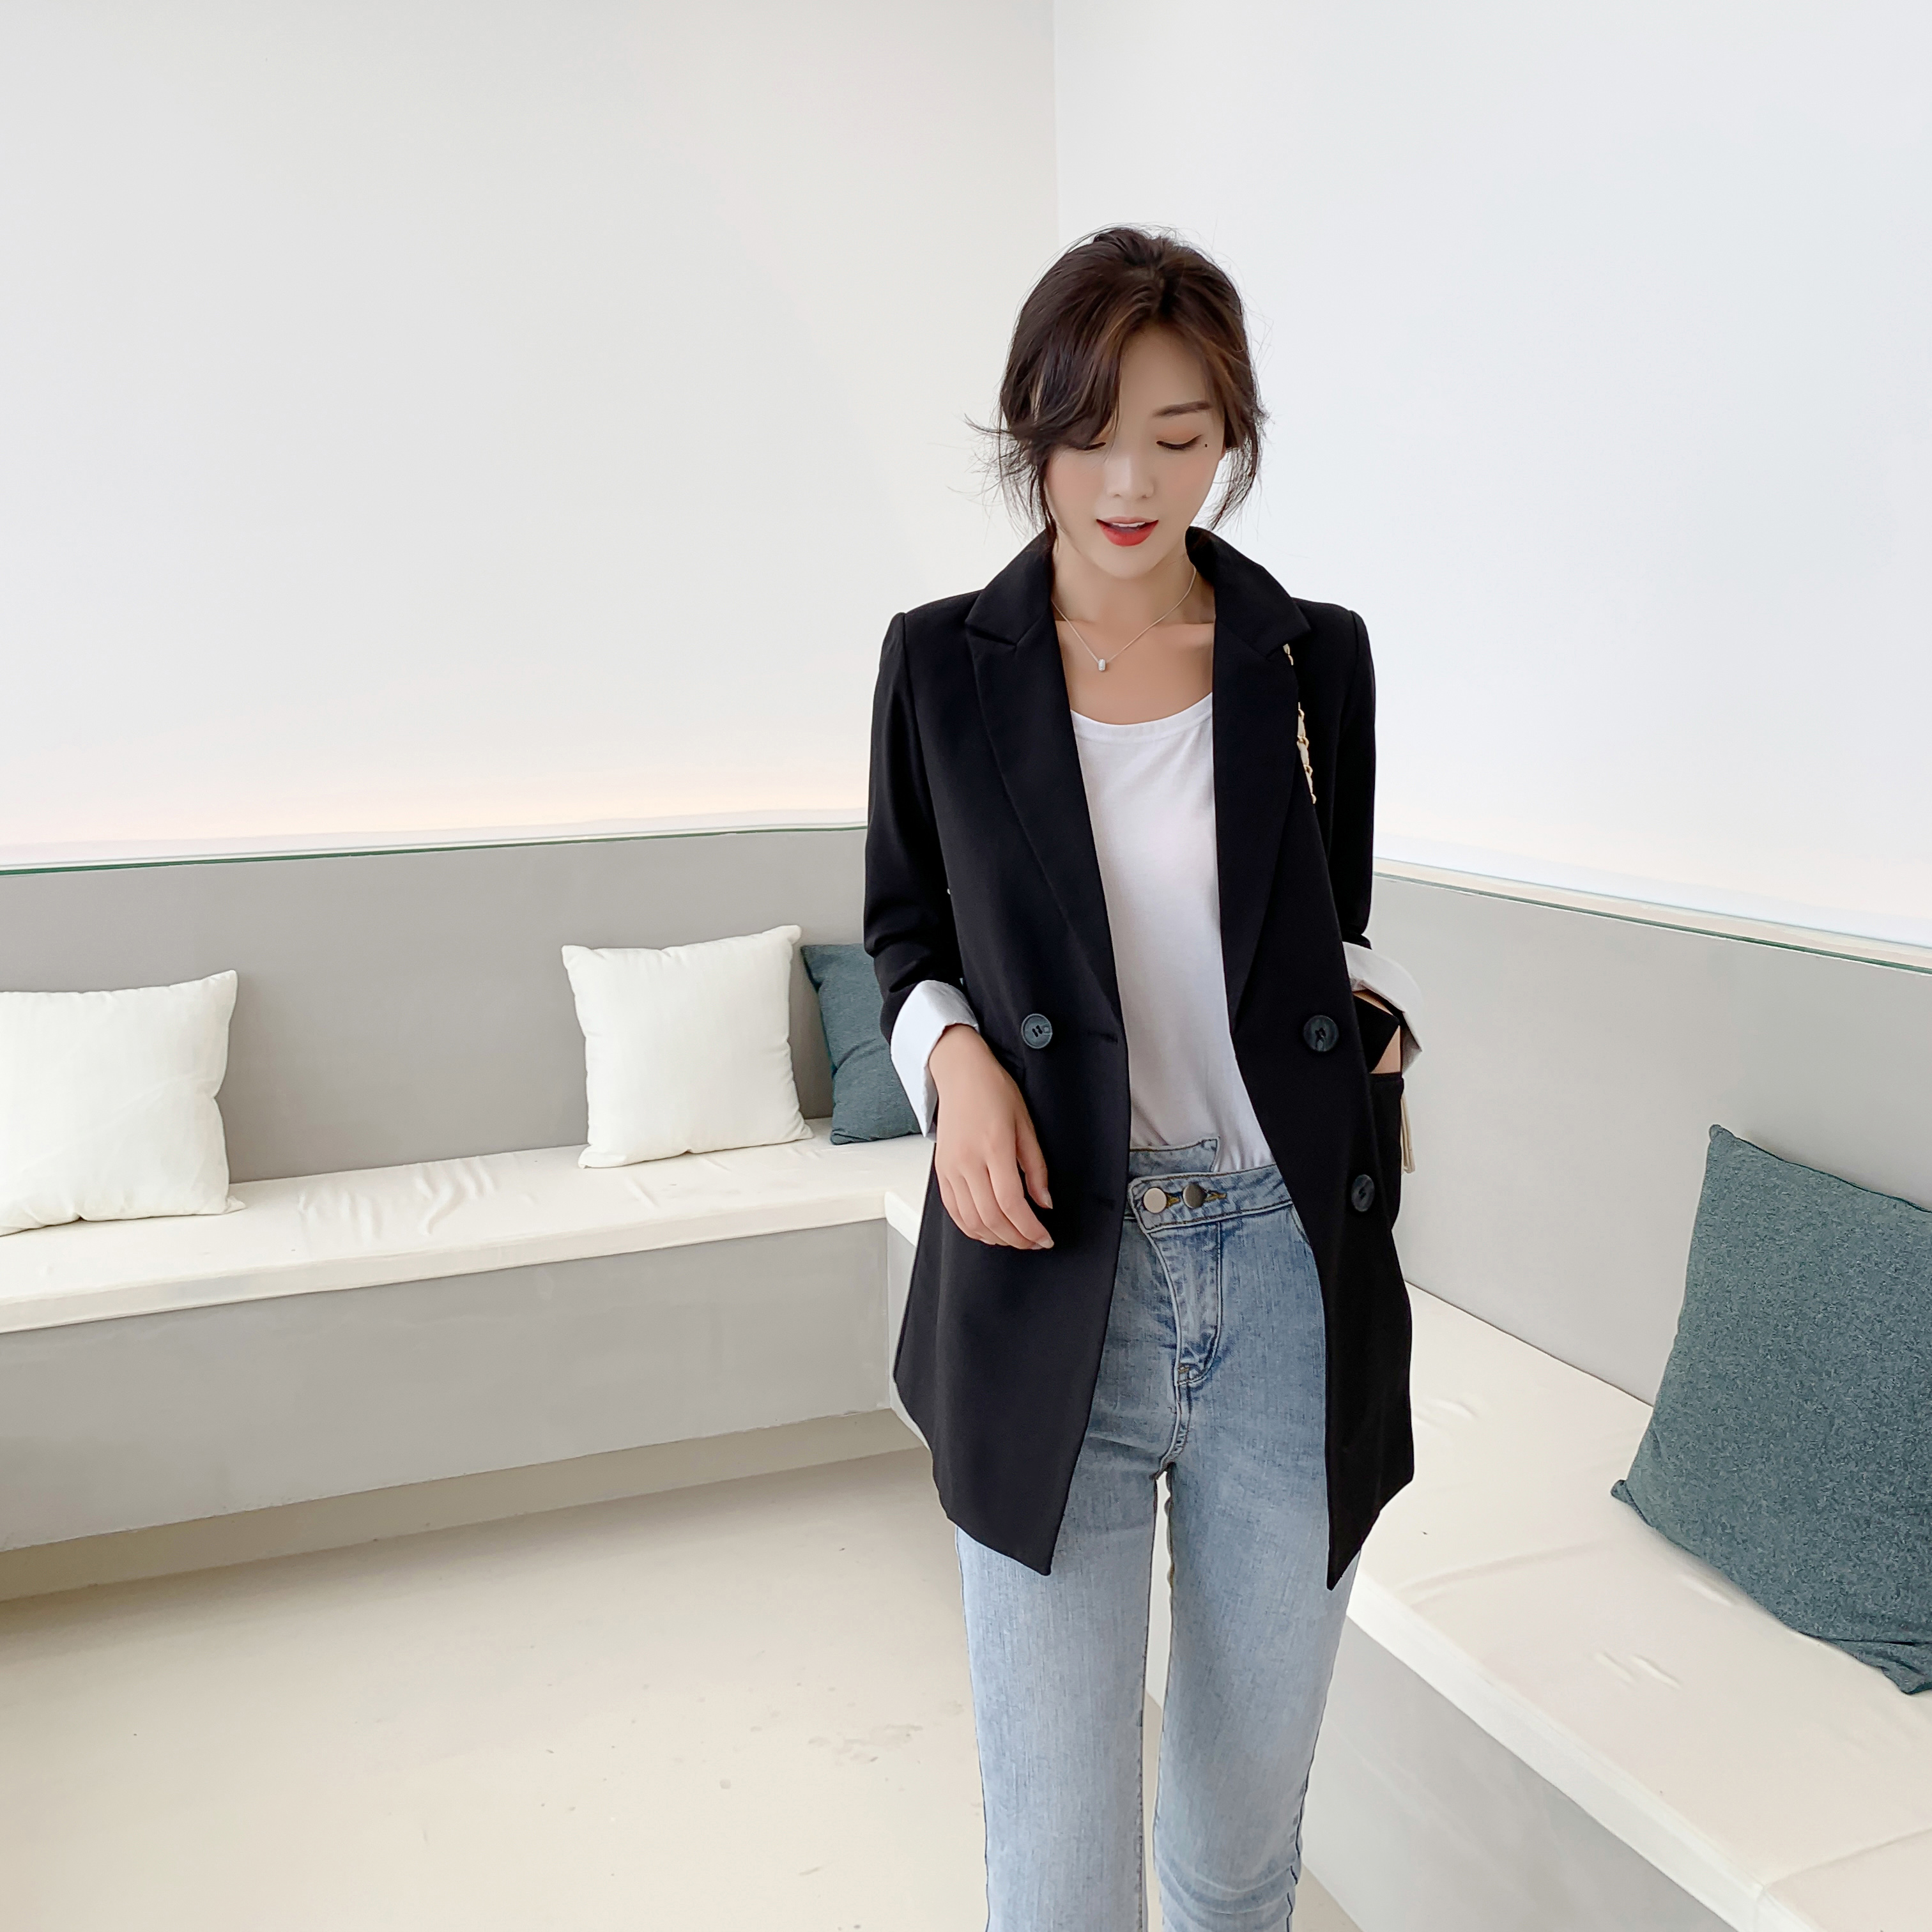 New Small Suit Jacket Female Fashioin Spring Autumn Korean Loose Outwear Casual Wild British Style Women Jacket